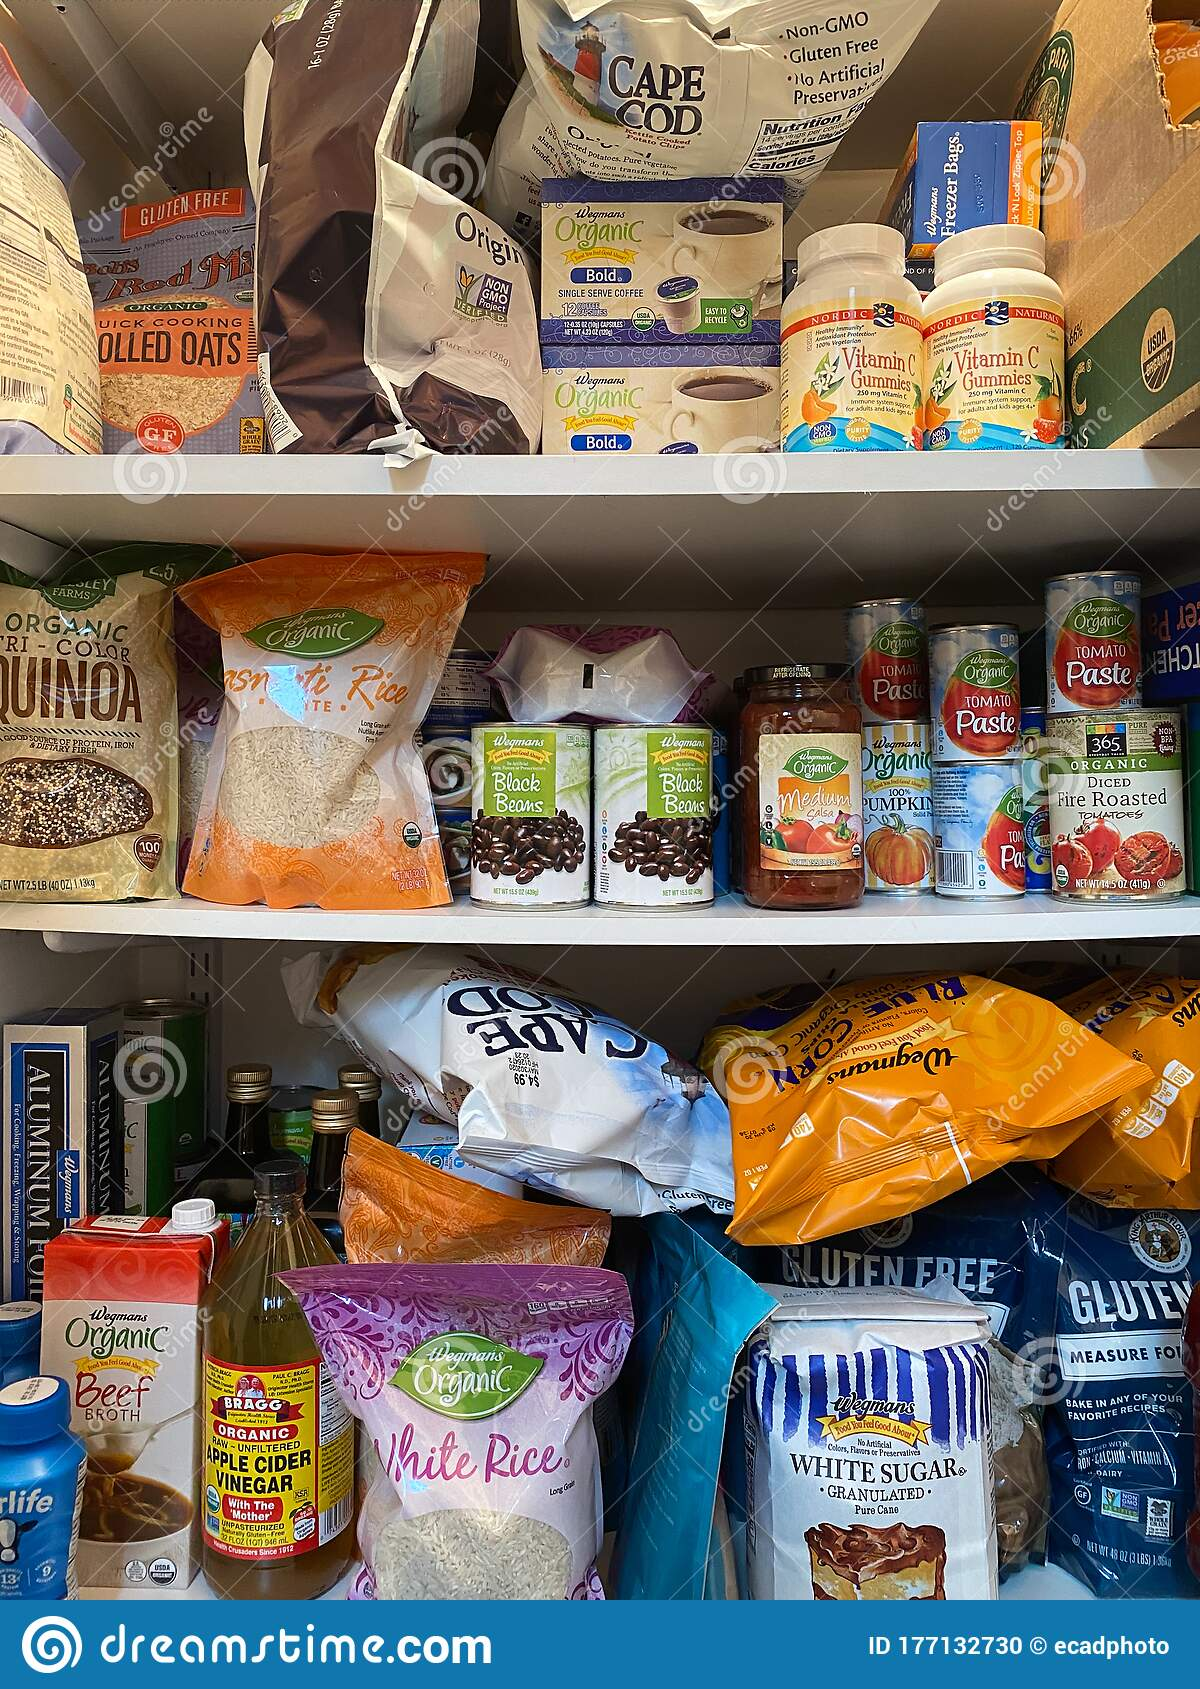 121 Dry Goods Groceries Photos Free Royalty Free Stock Photos From Dreamstime